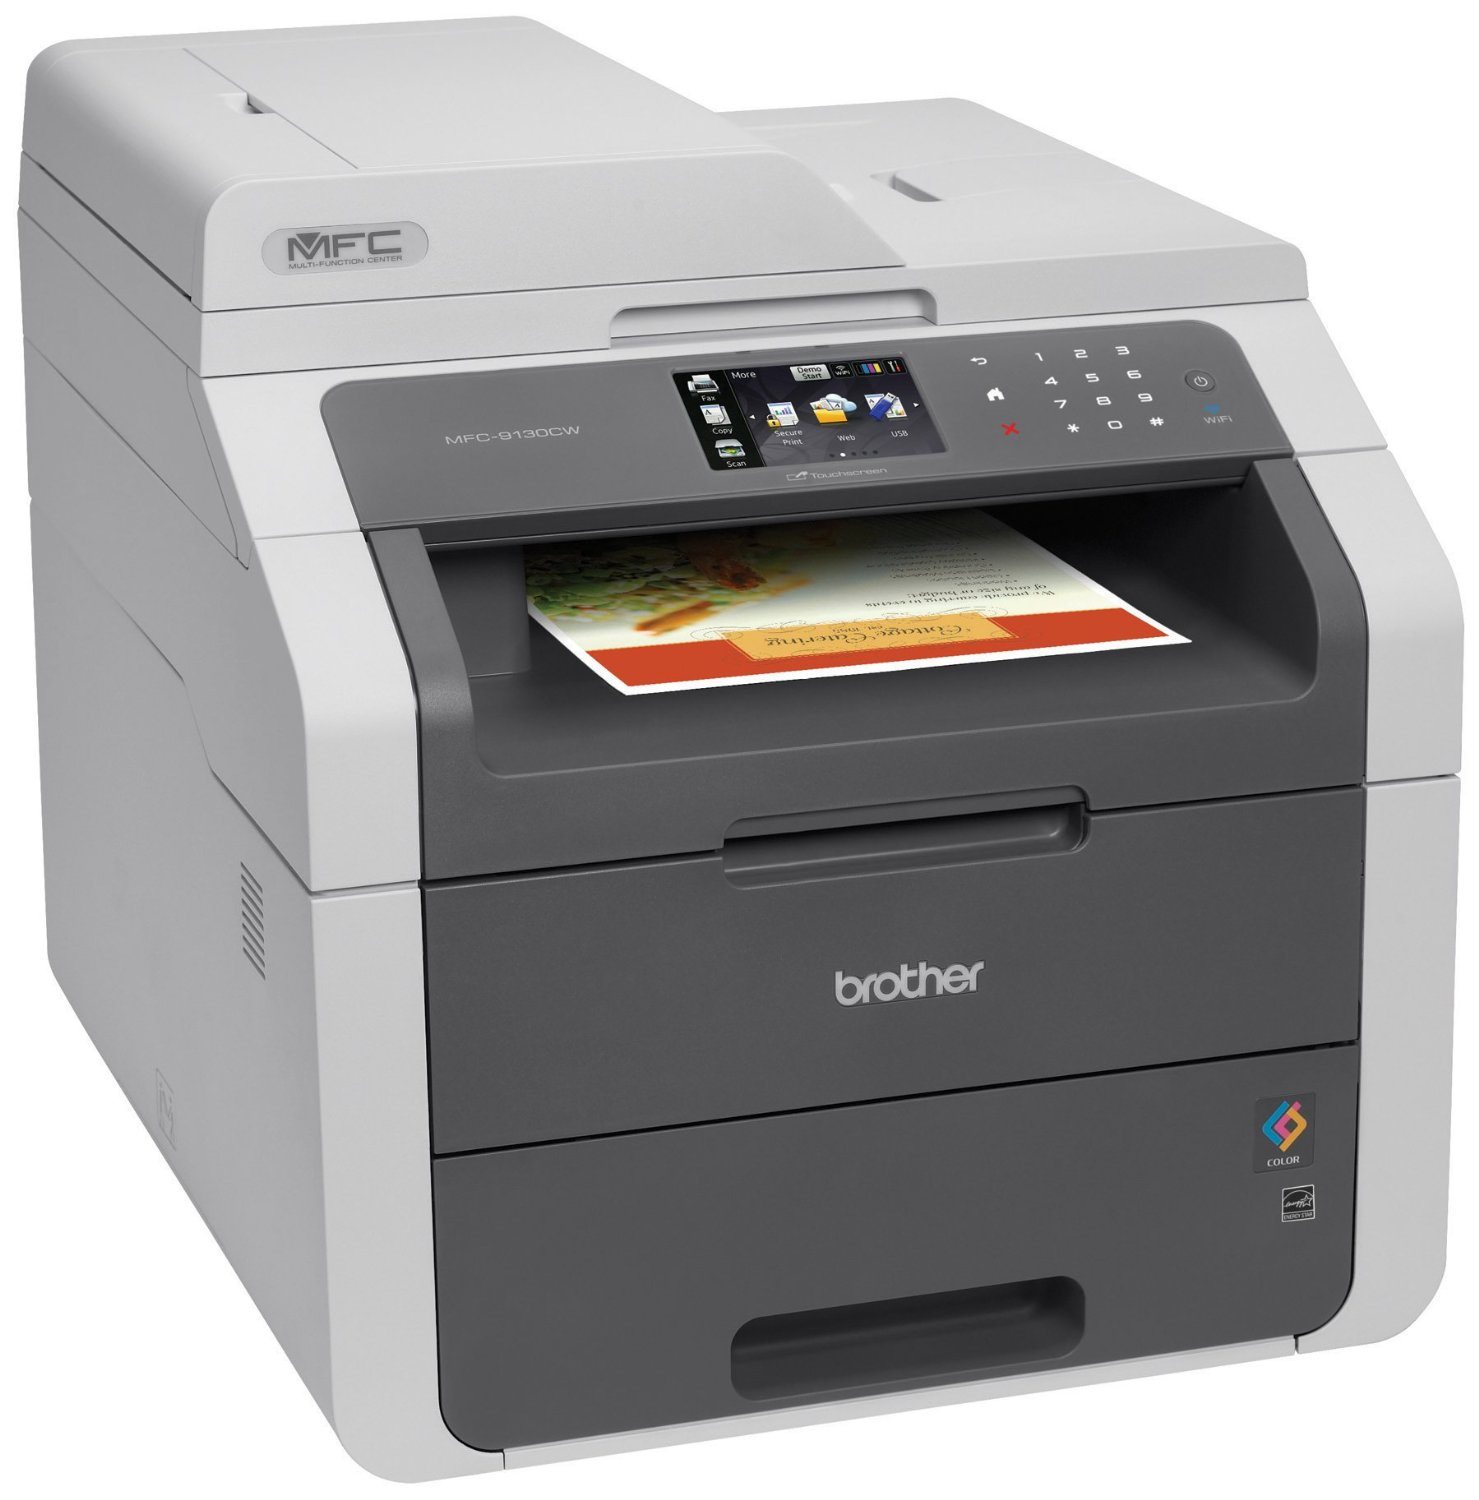 Brother Printer Rmfc9130cw Wireless Color Printer With Scanner